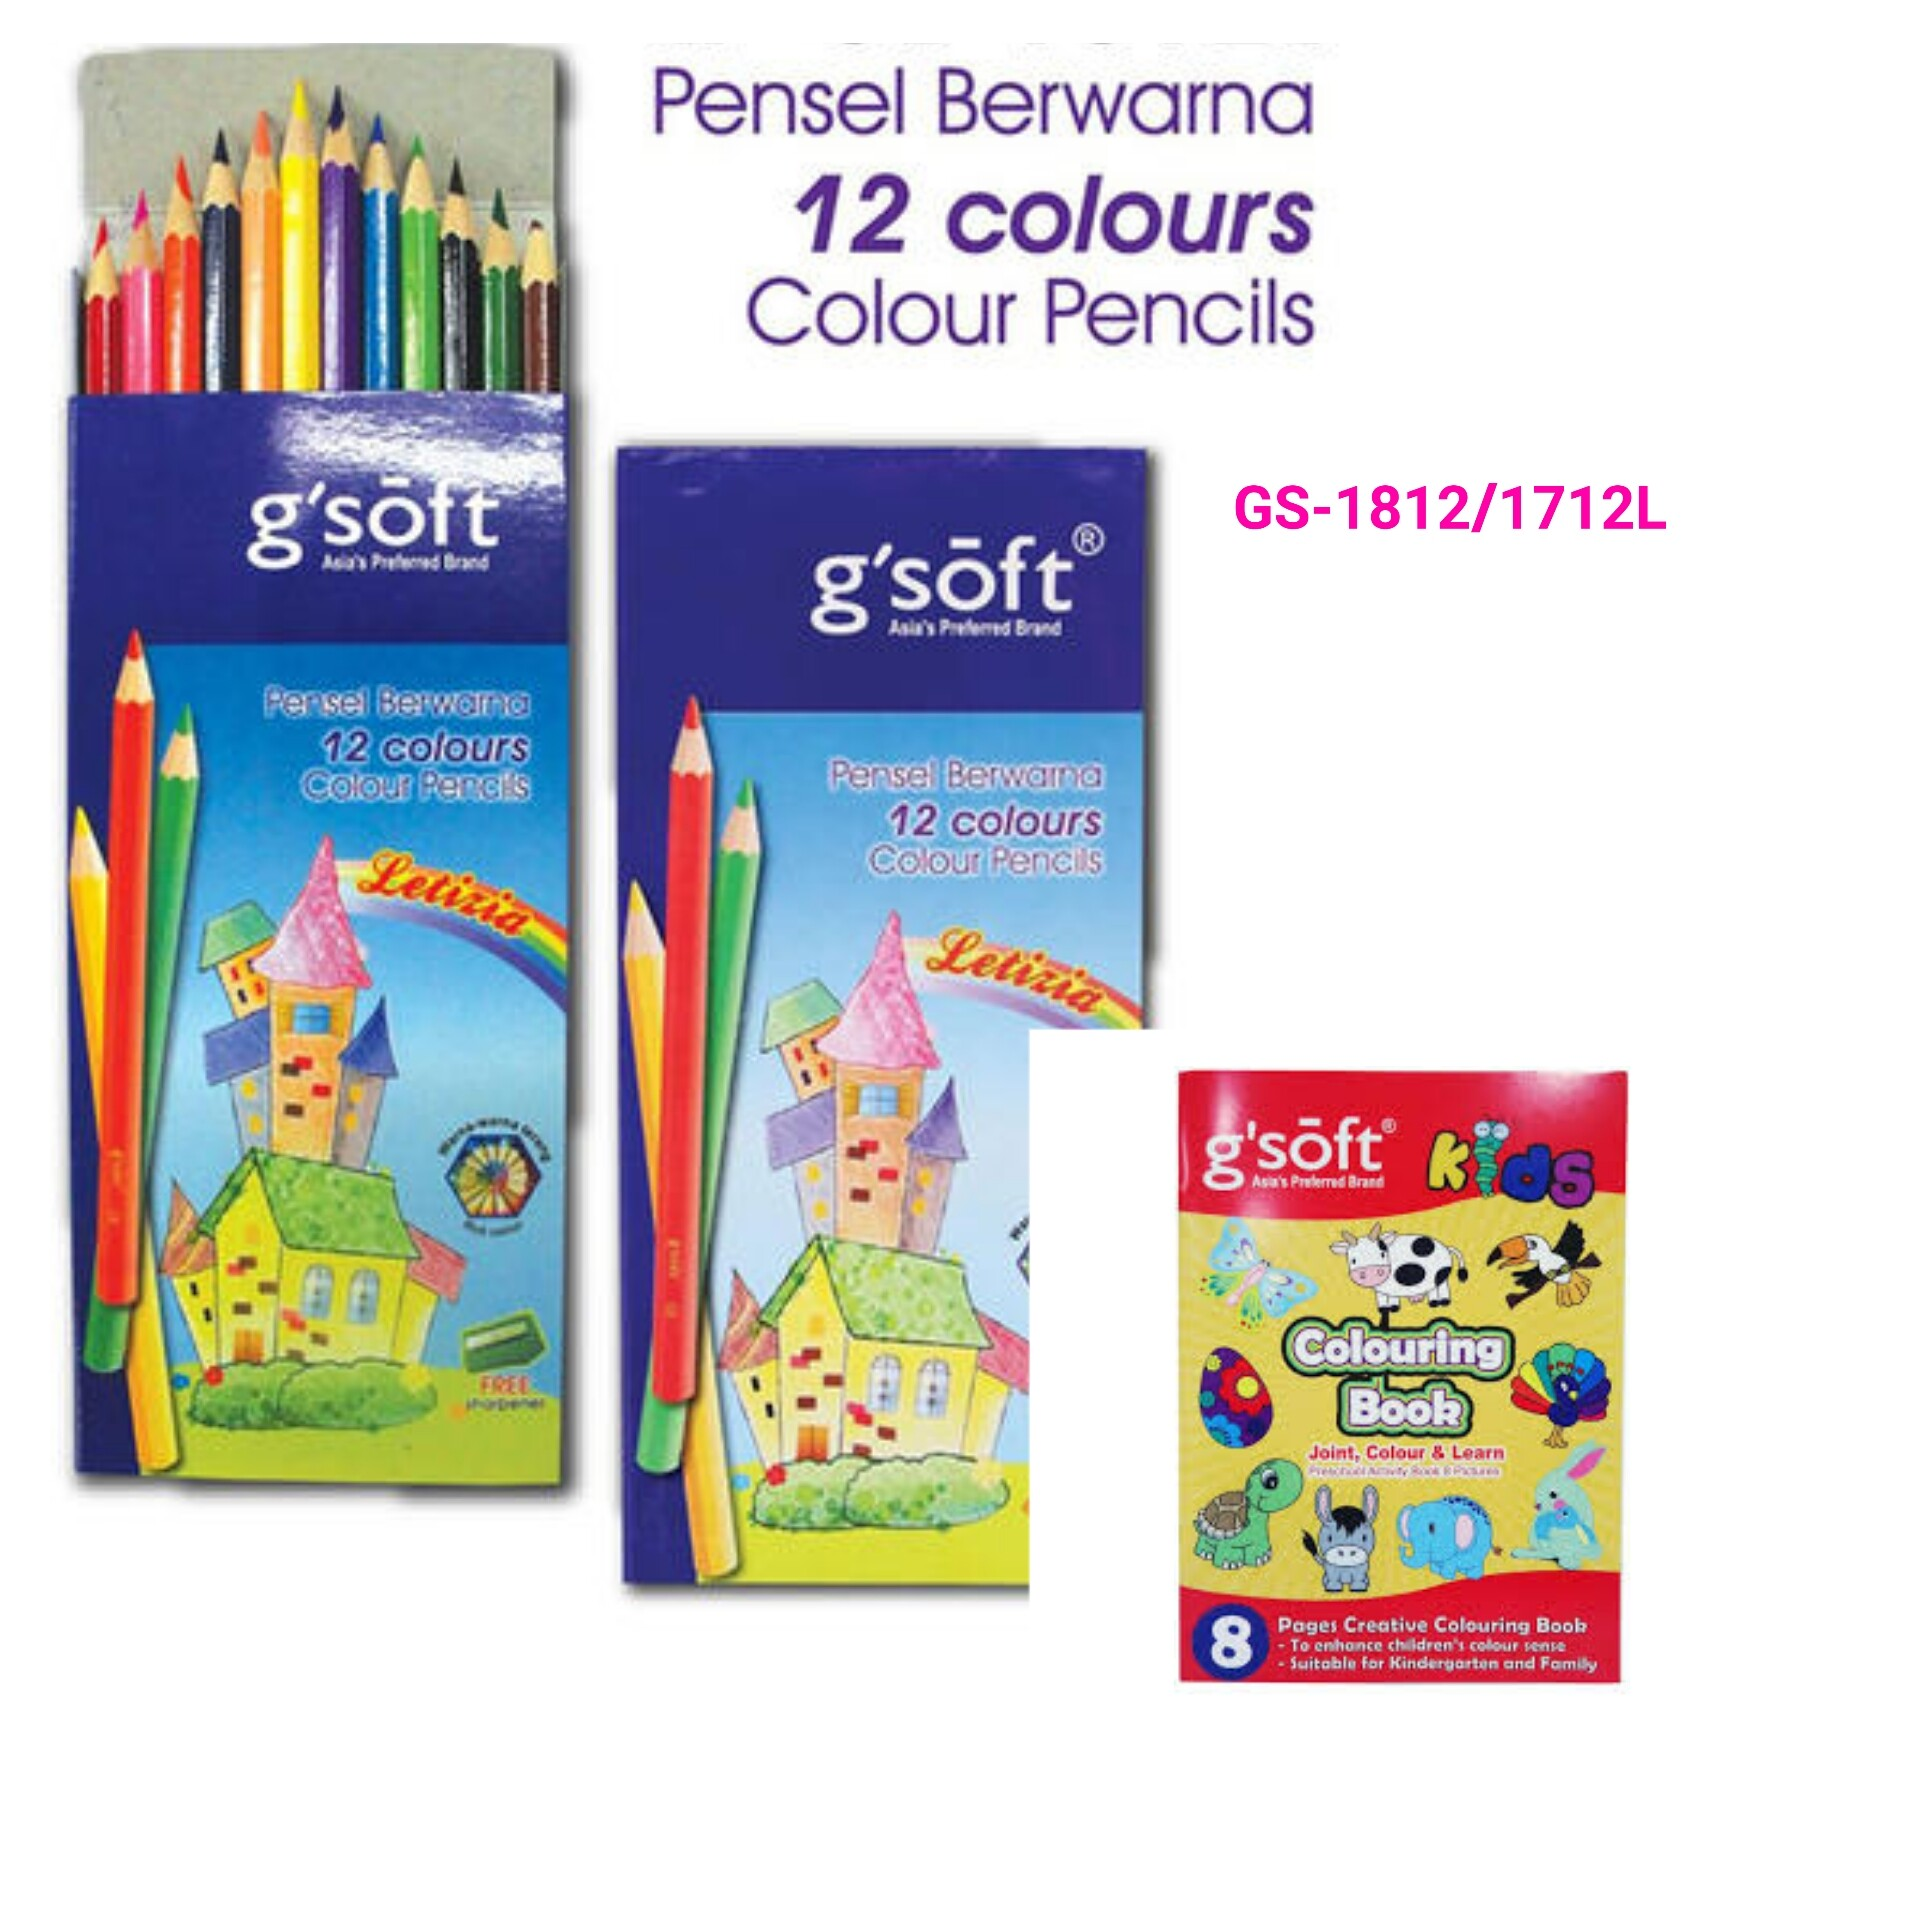 (5sets) GSOFT GS1712/1812L 12s COLOUR PENCIL (LONG) Free colouring book x 5sets